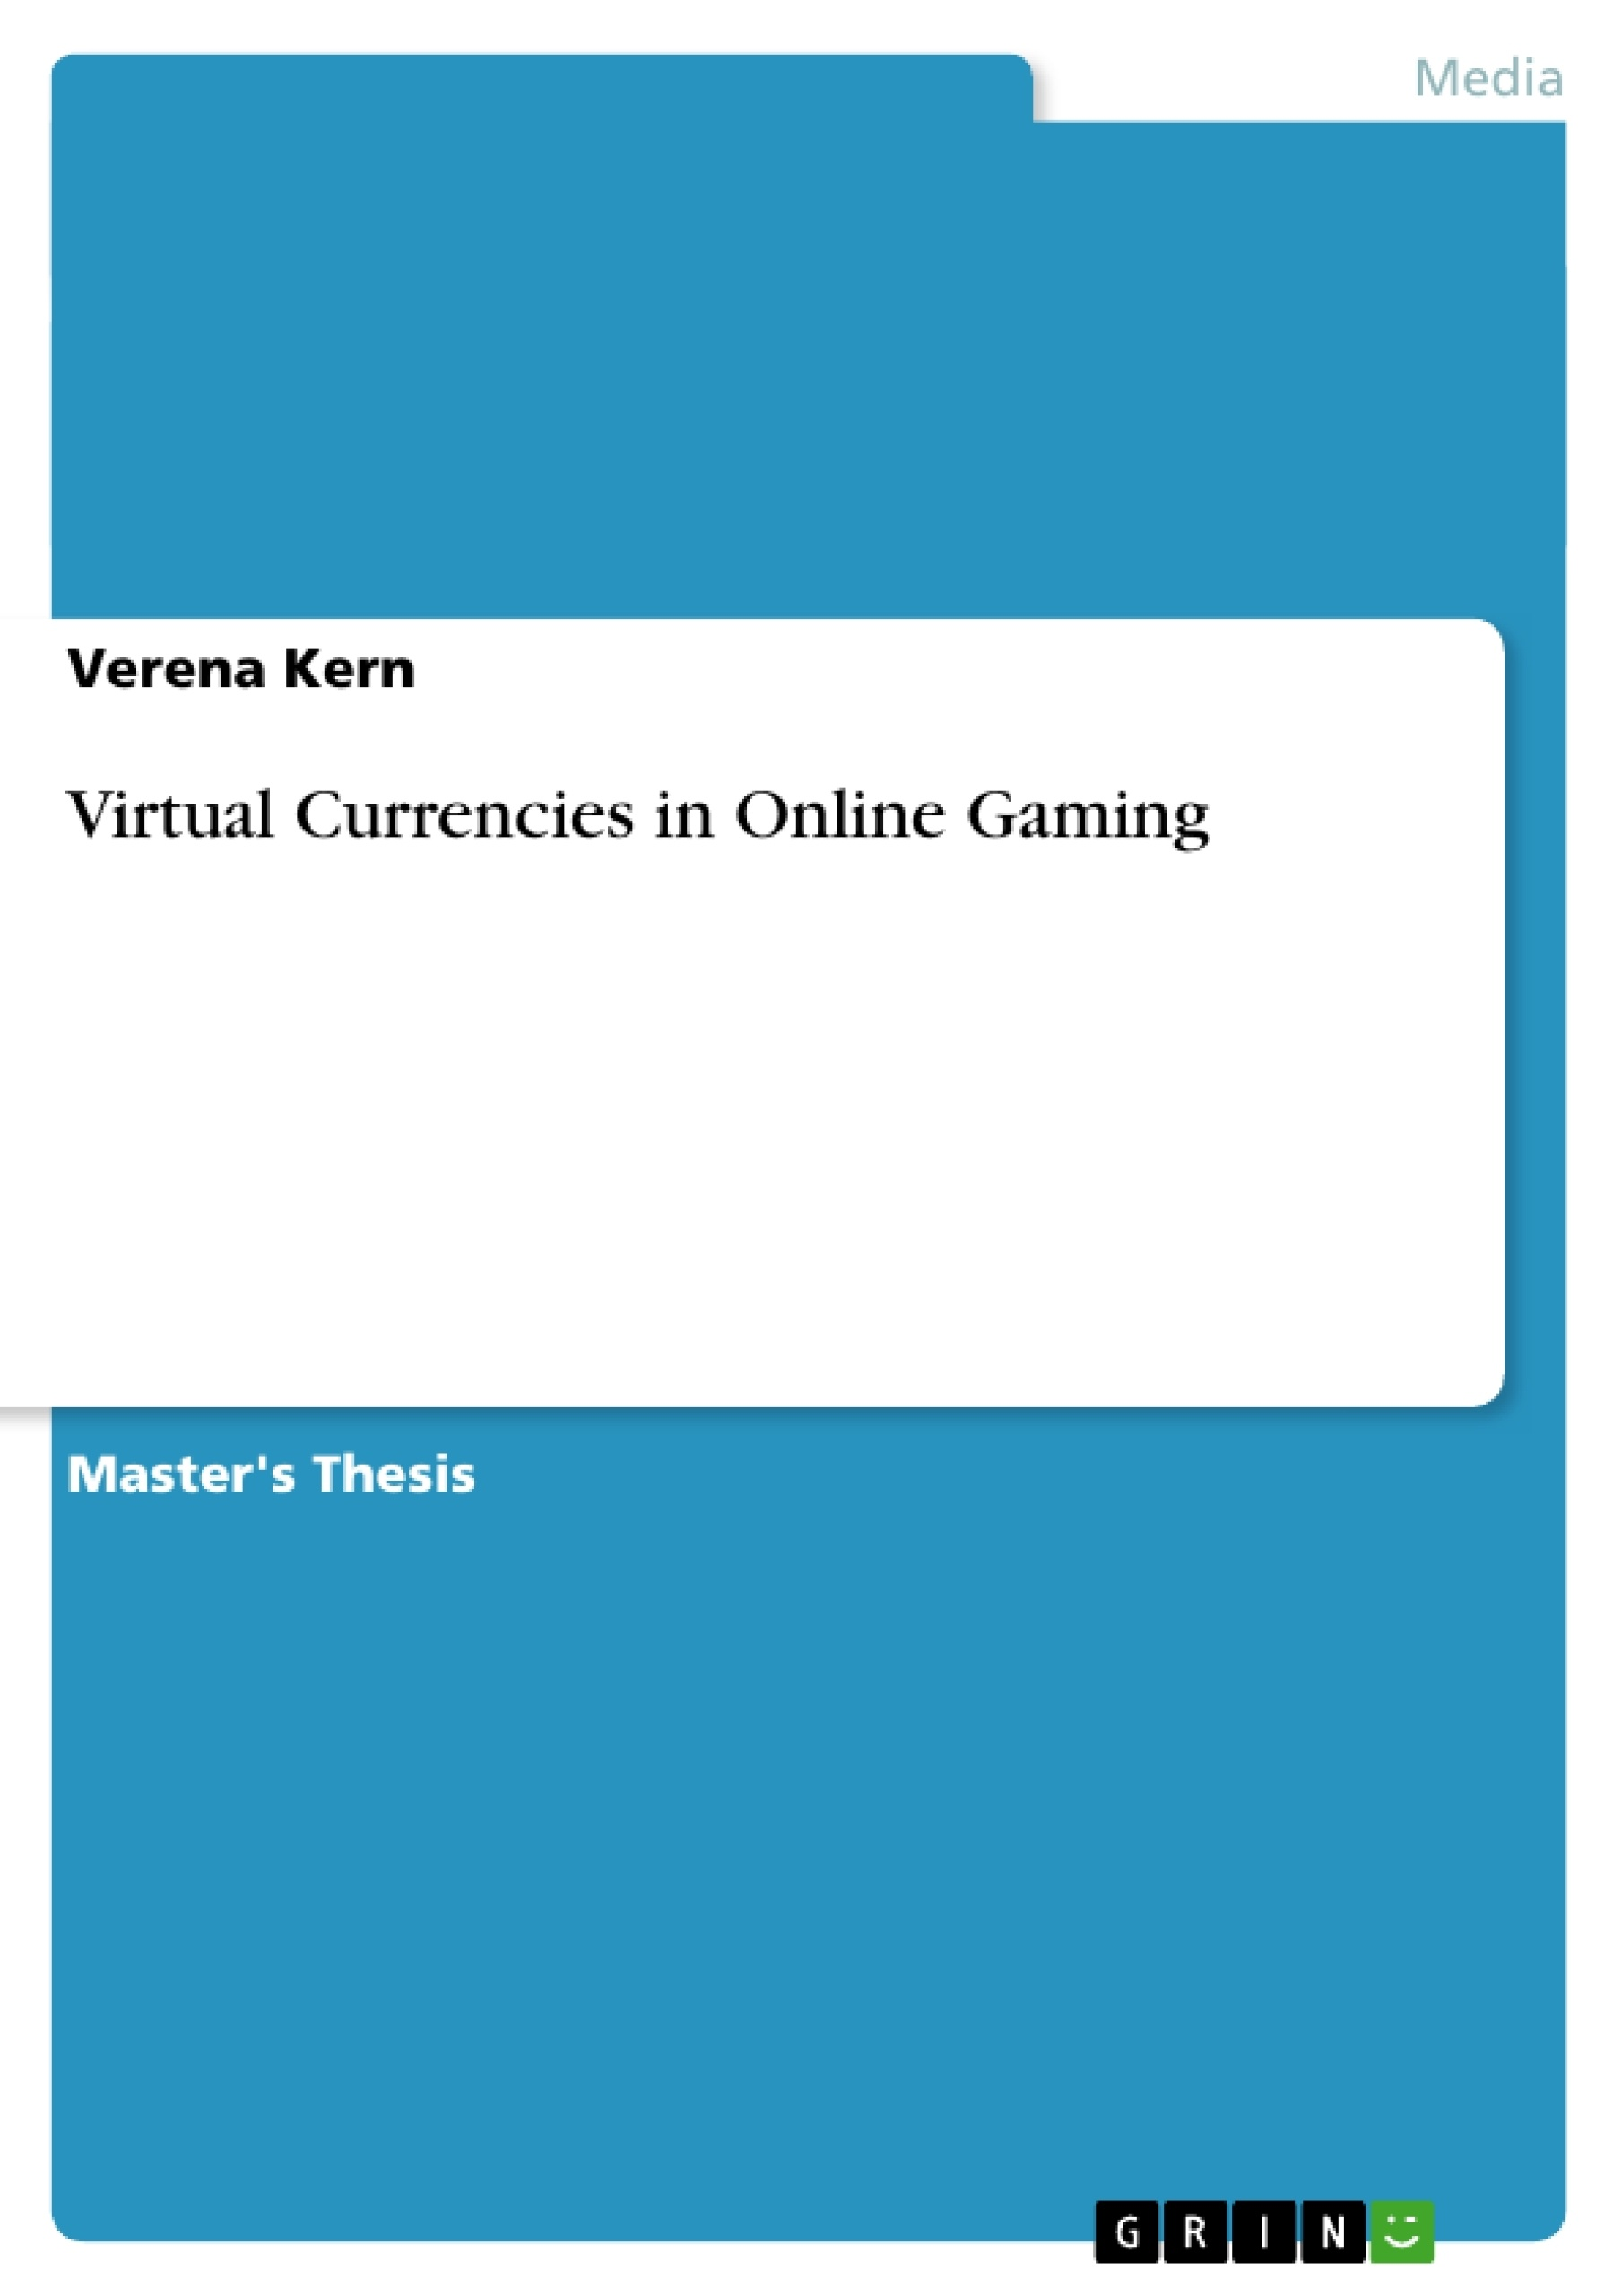 Title: Virtual Currencies in Online Gaming